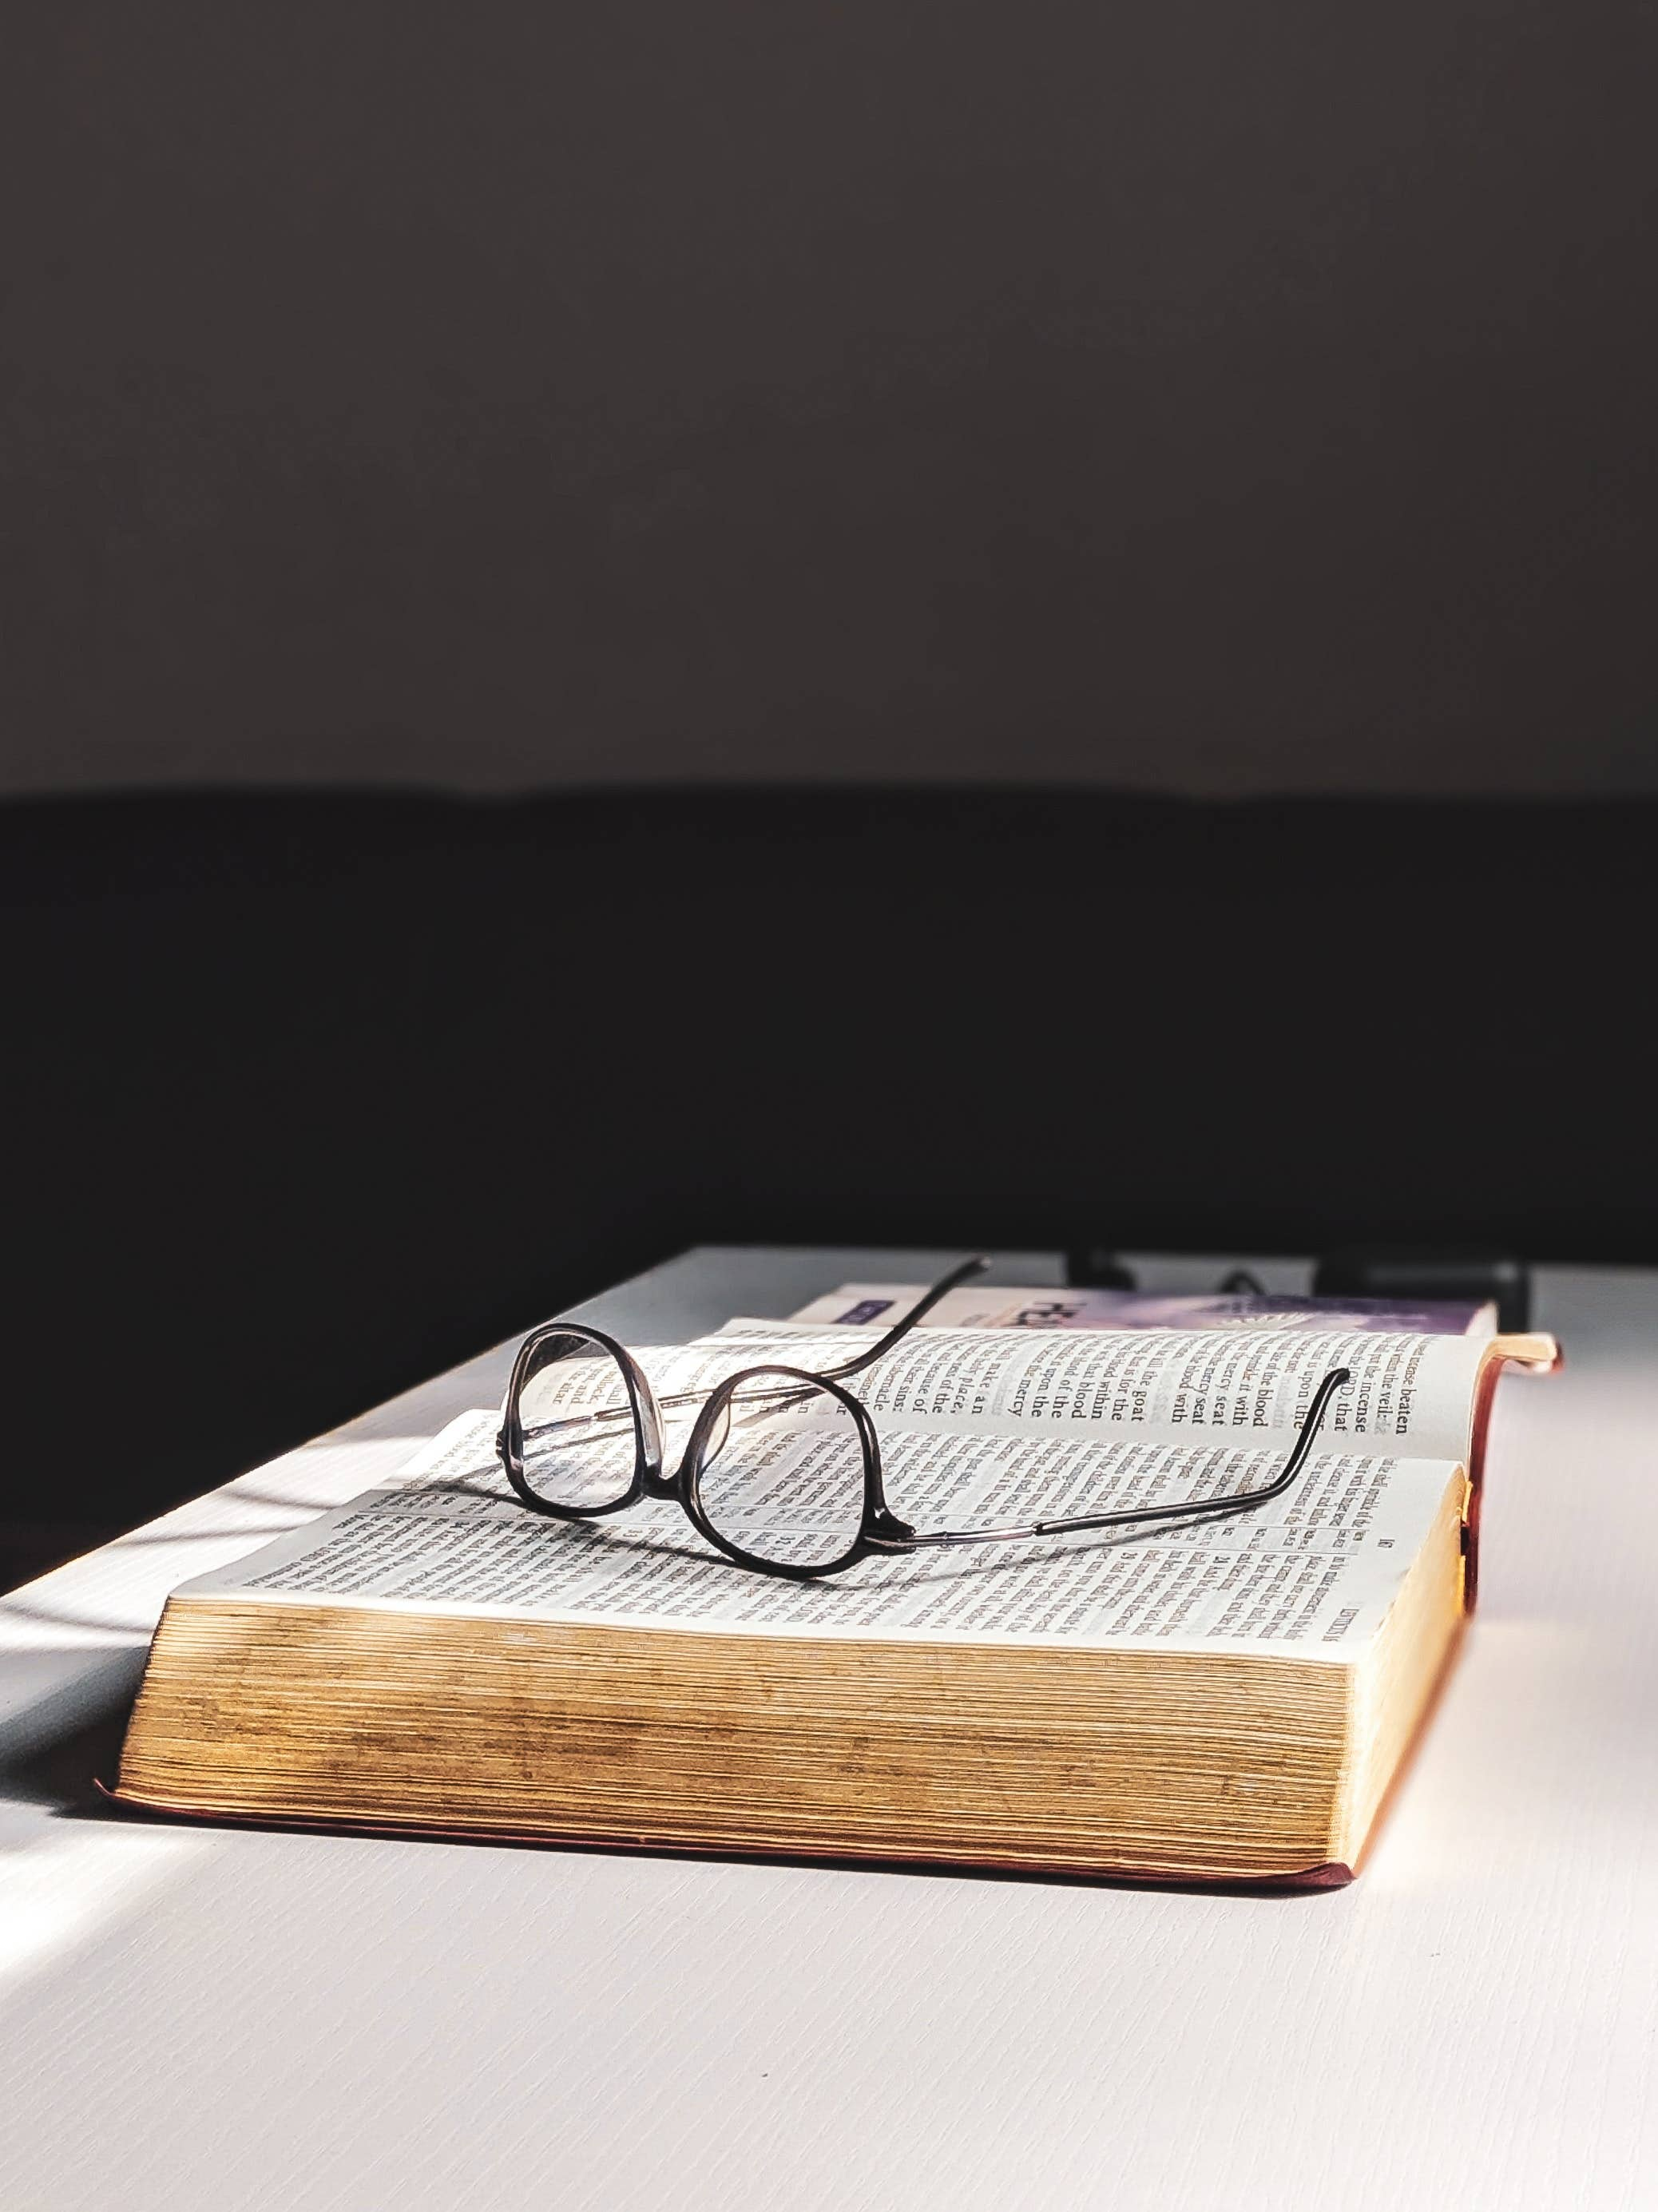 Eyeglasses on an opened book